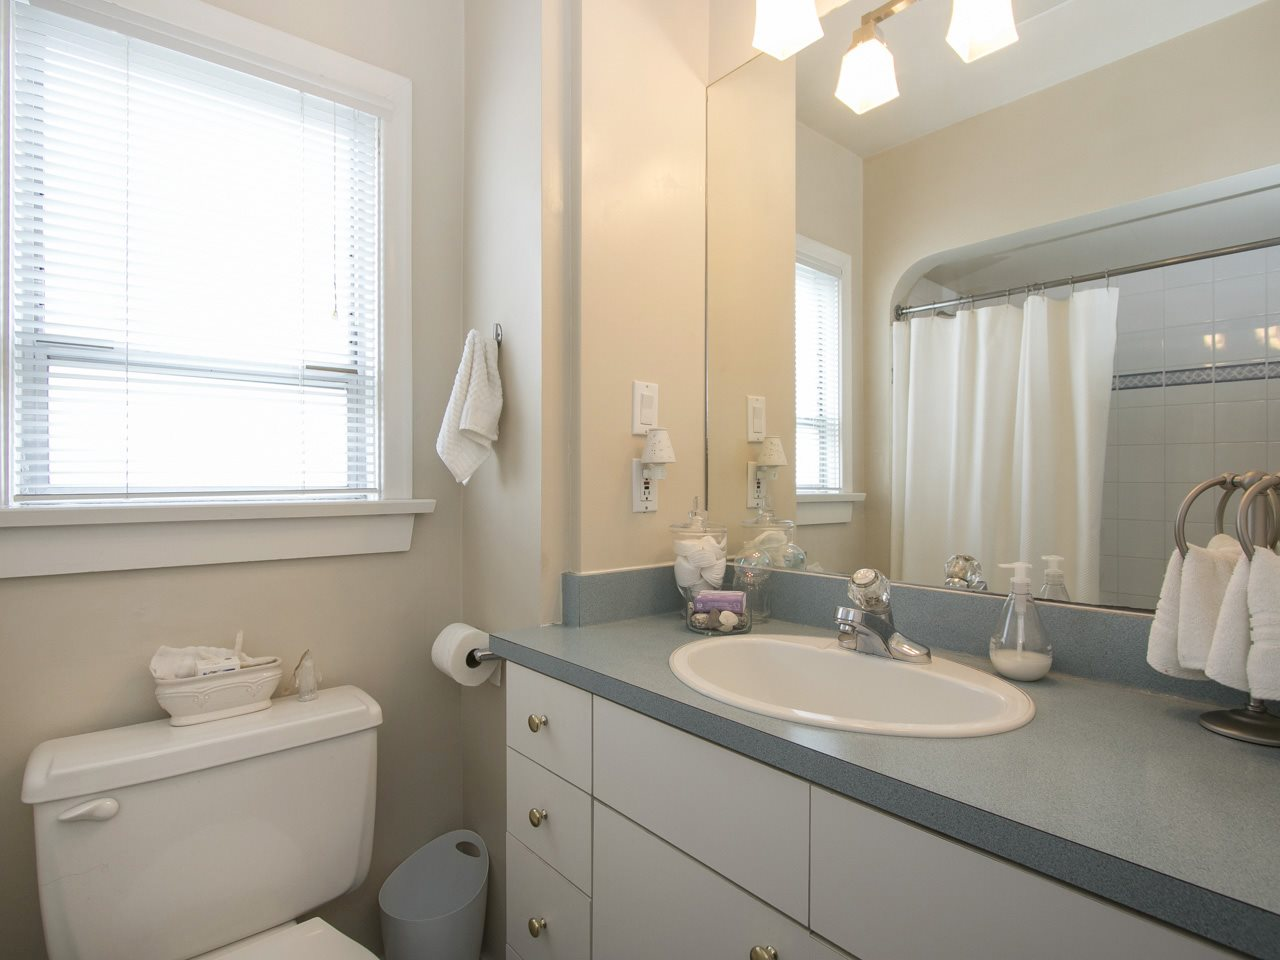 Photo 9: 5681 ONTARIO Street in Vancouver: Cambie House for sale (Vancouver West)  : MLS® # R2135614